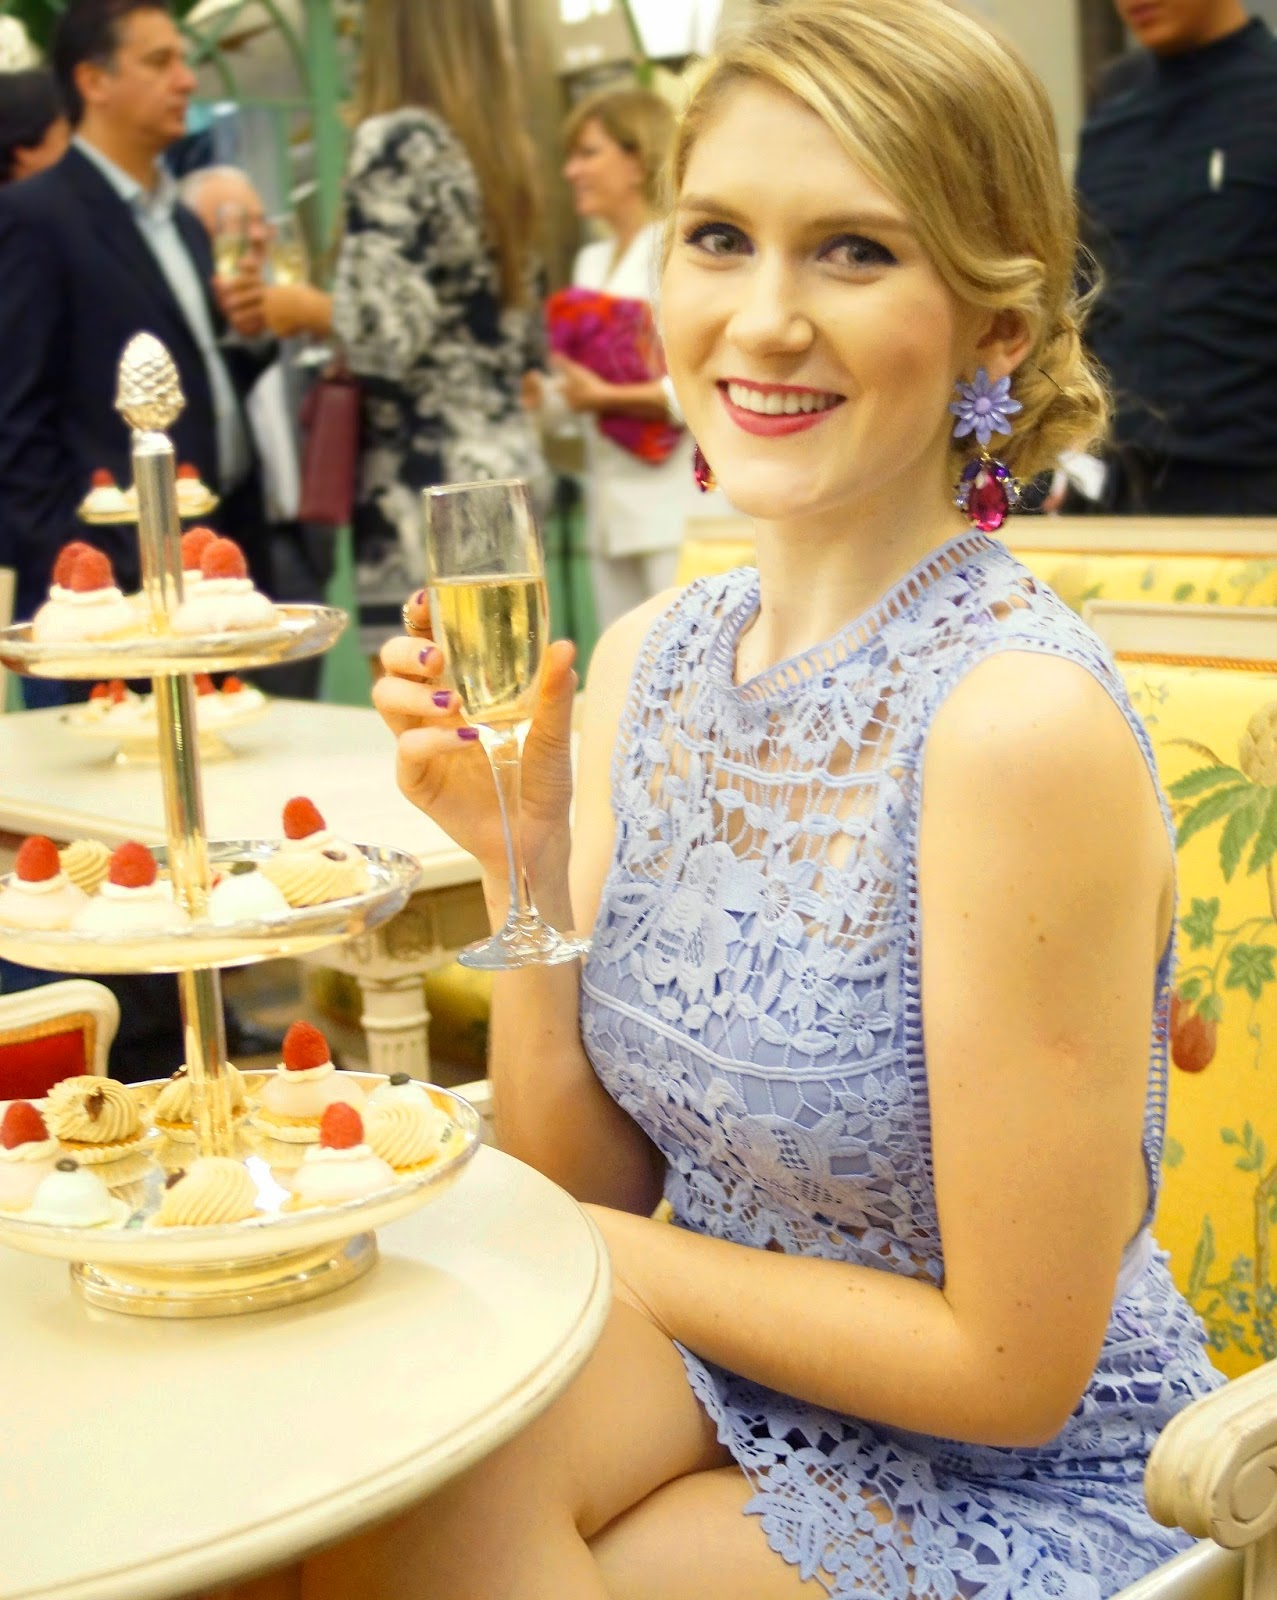 Ladurée is a perfect spot for delicious french desserts!